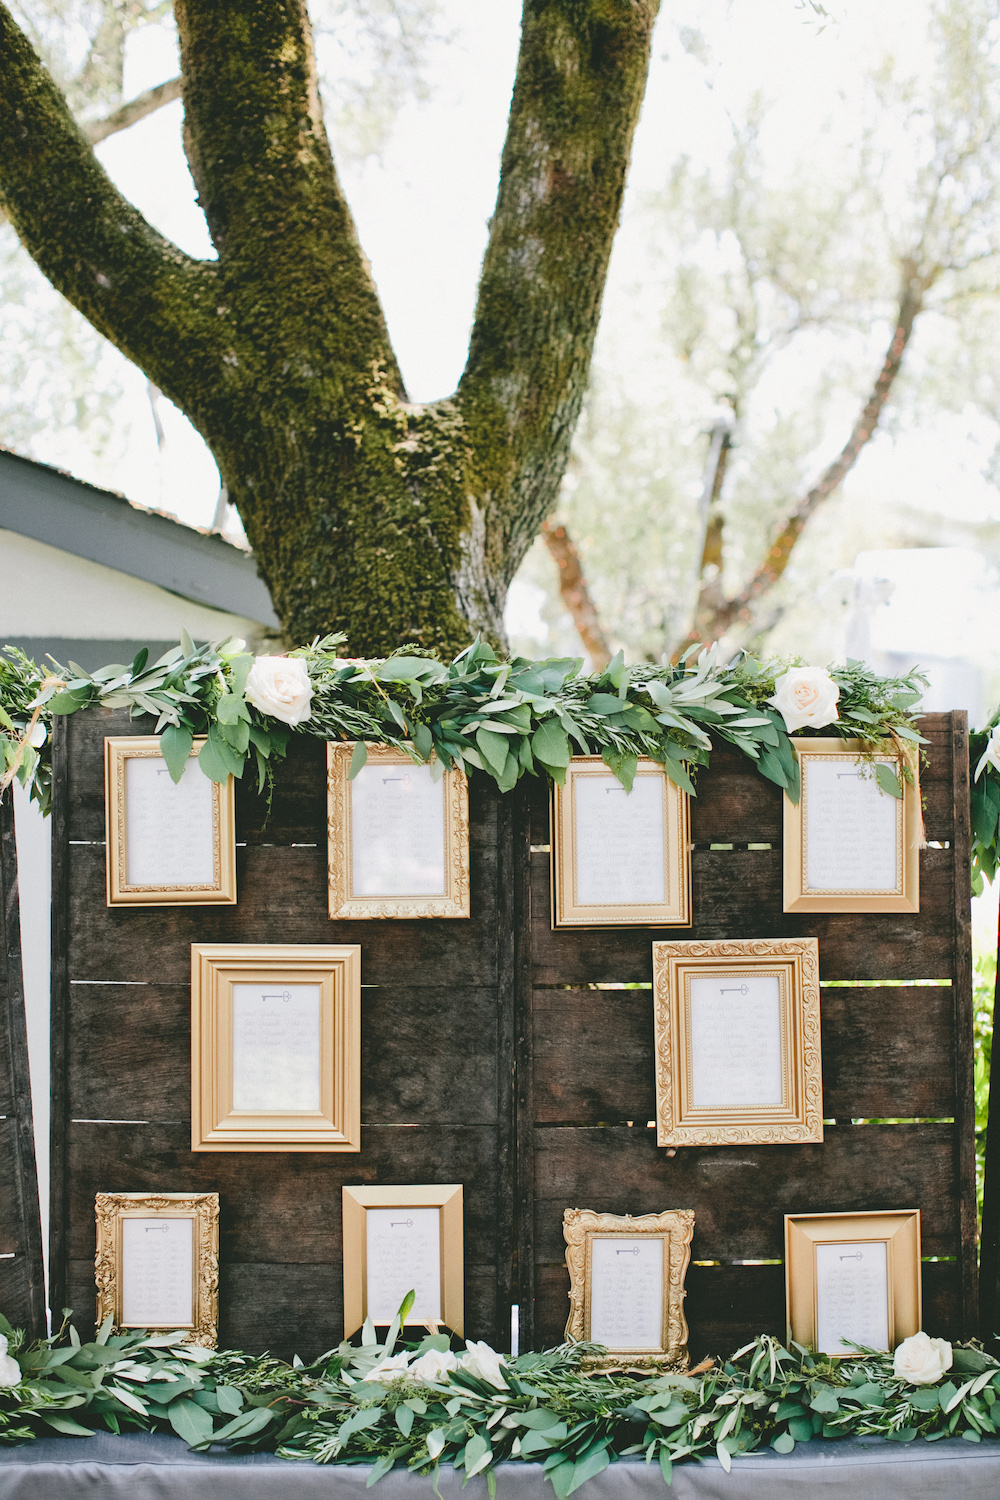 Wedding Planning Tasks That Are a Waste of Your Time